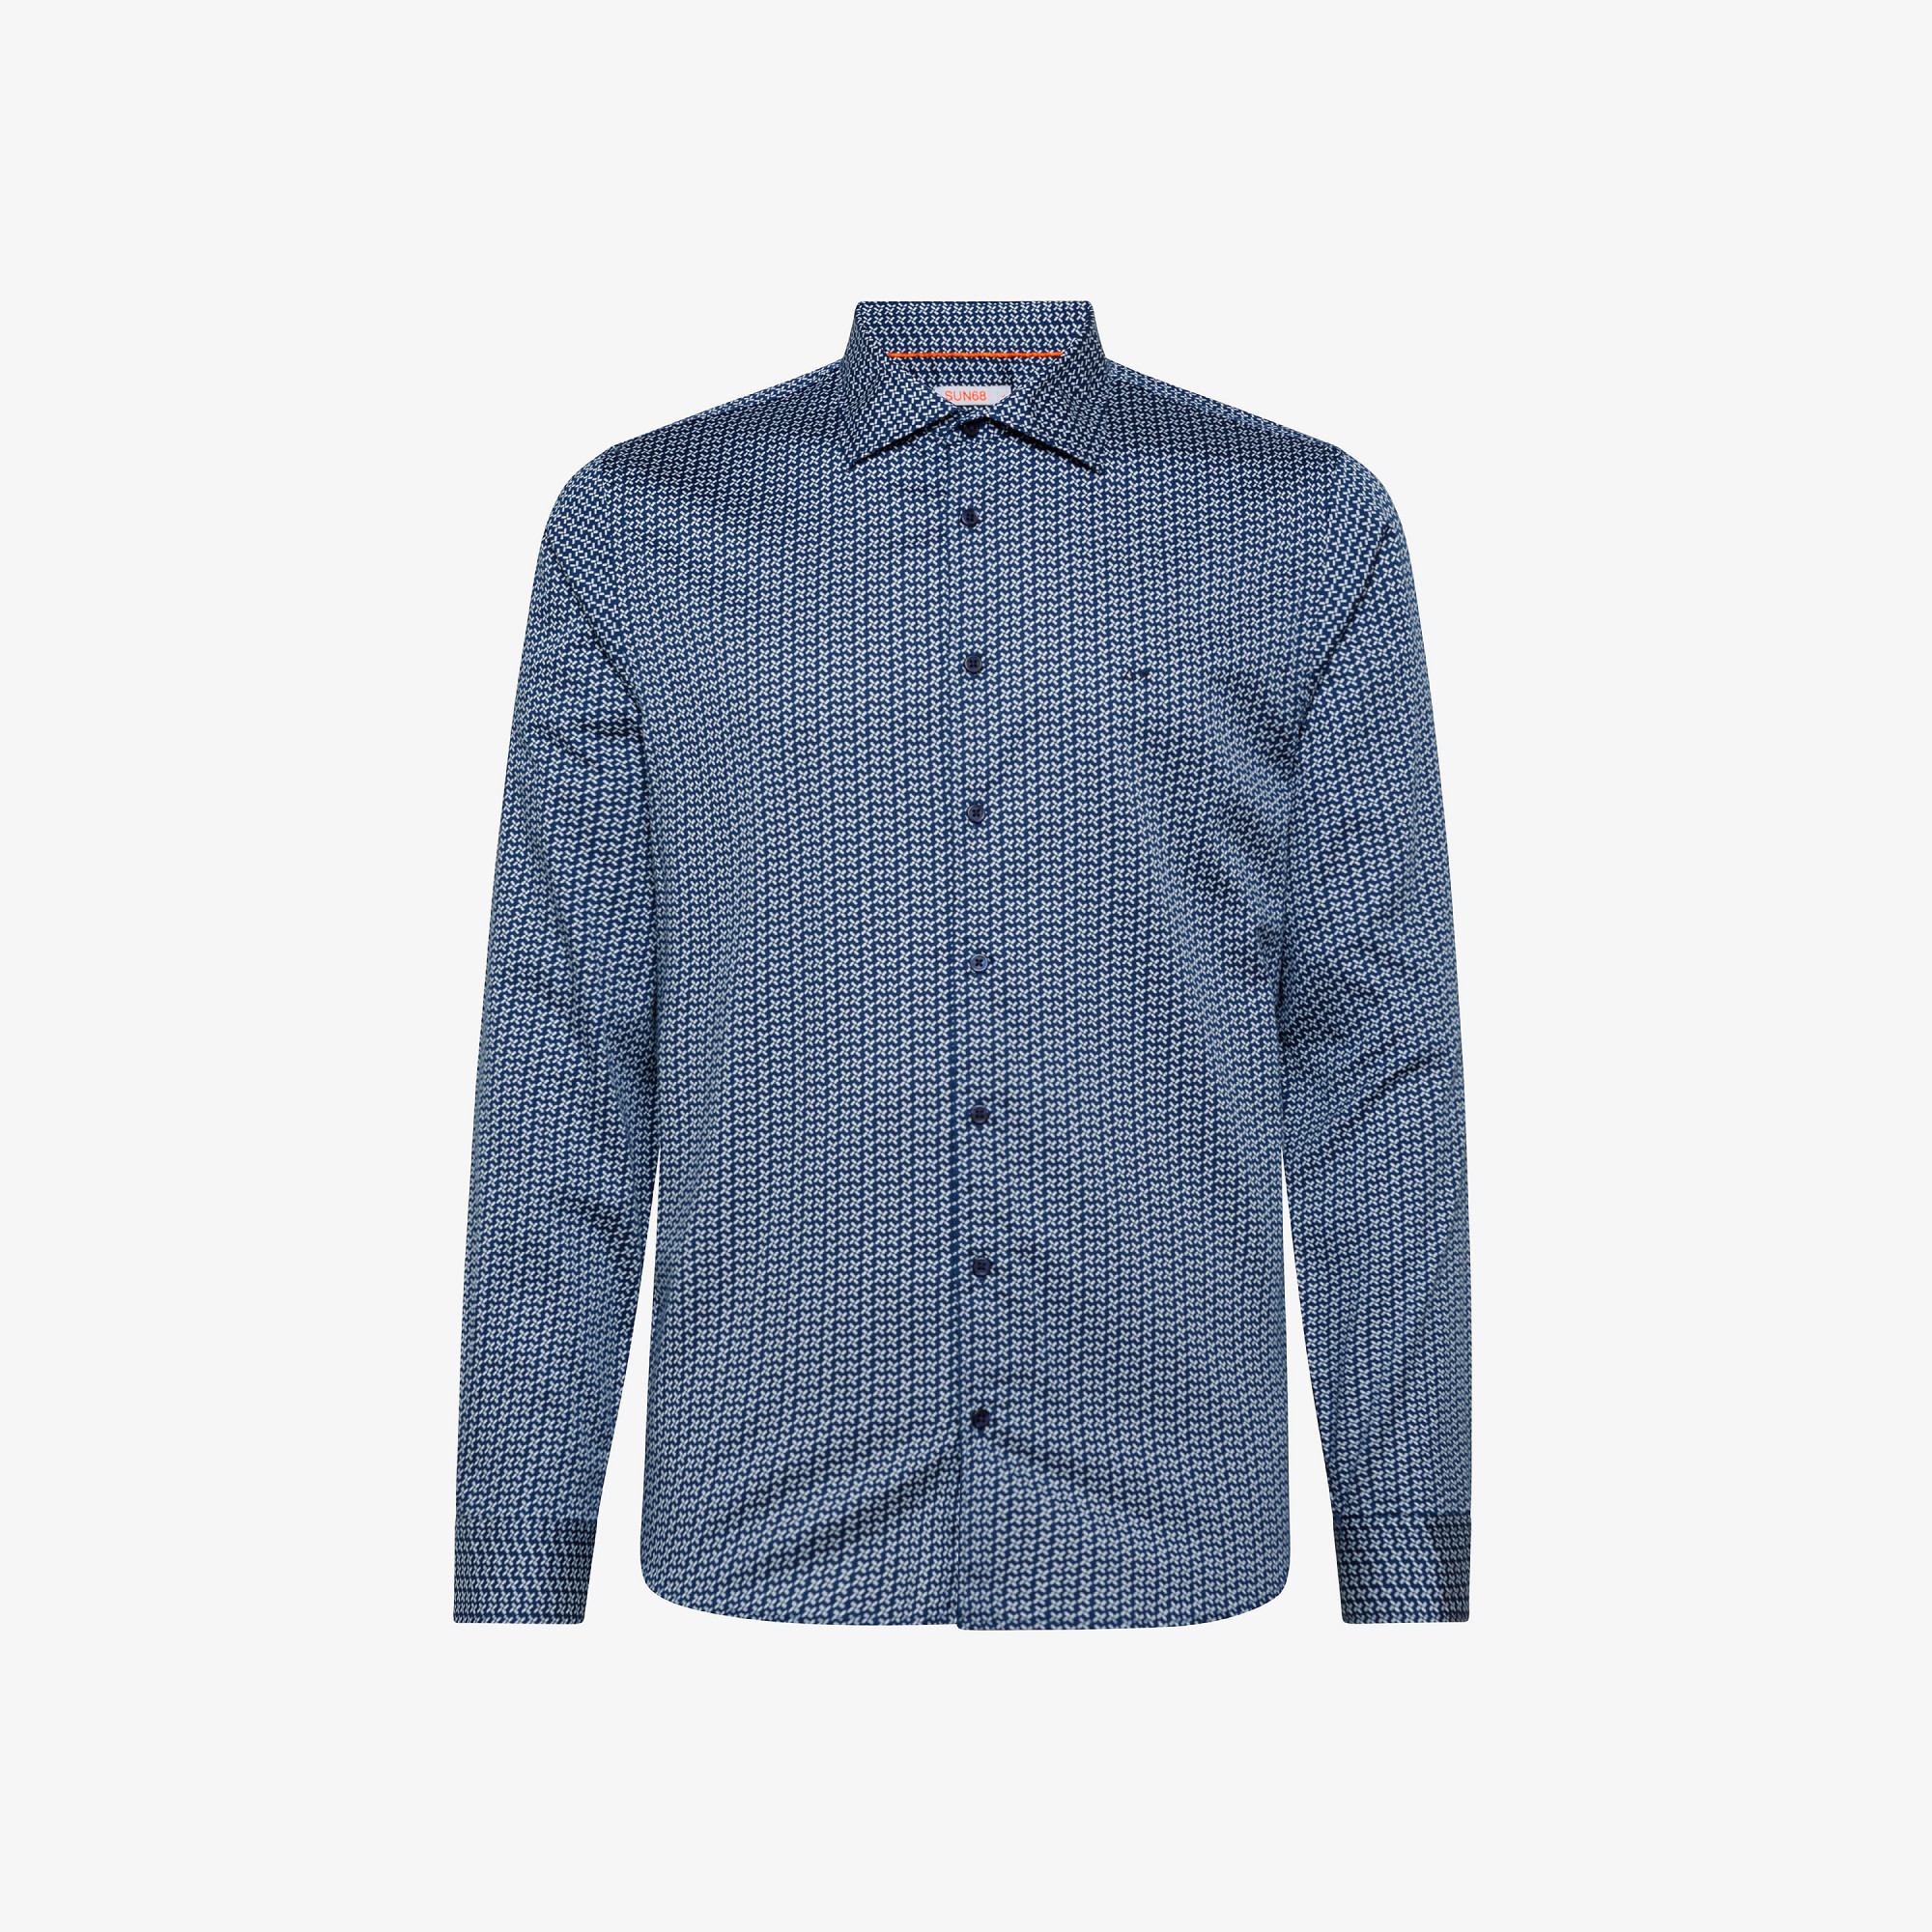 SHIRT MICROPRINT FRENCH COLLAR L/S NAVY BLUE/OFF WHITE